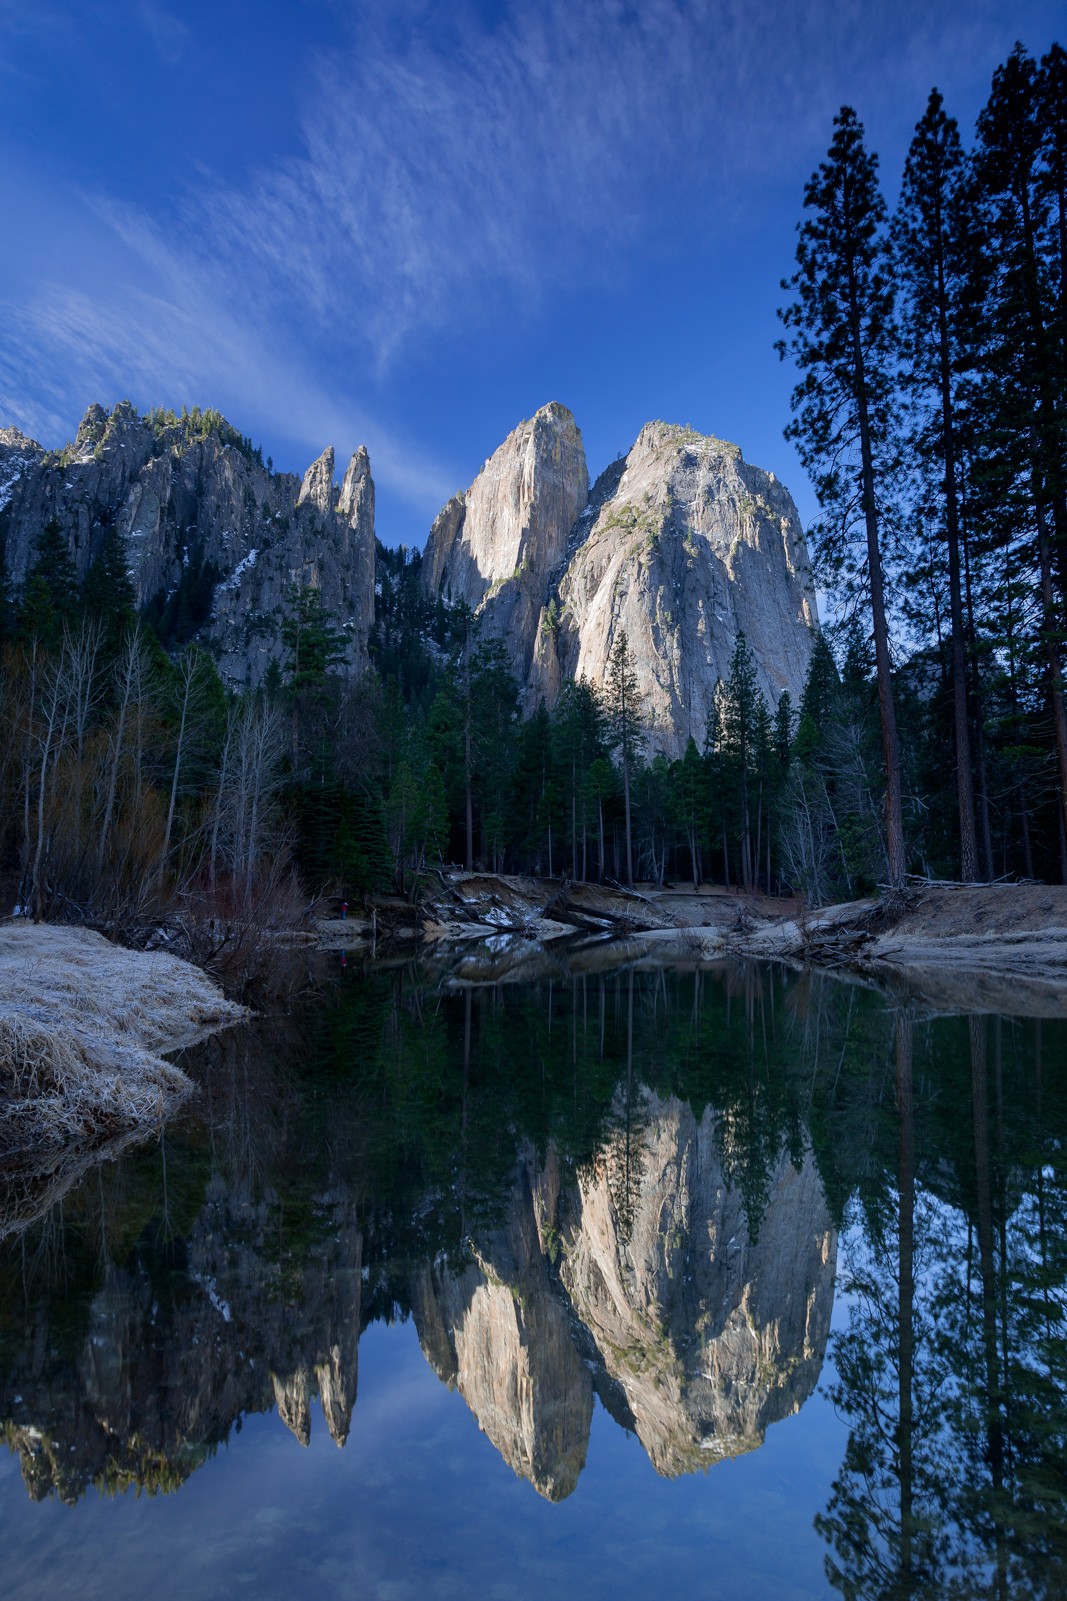 California, Yosemite, Cathedral Rocks, Reflection, limited edition, photograph, fine art, landscape, photo